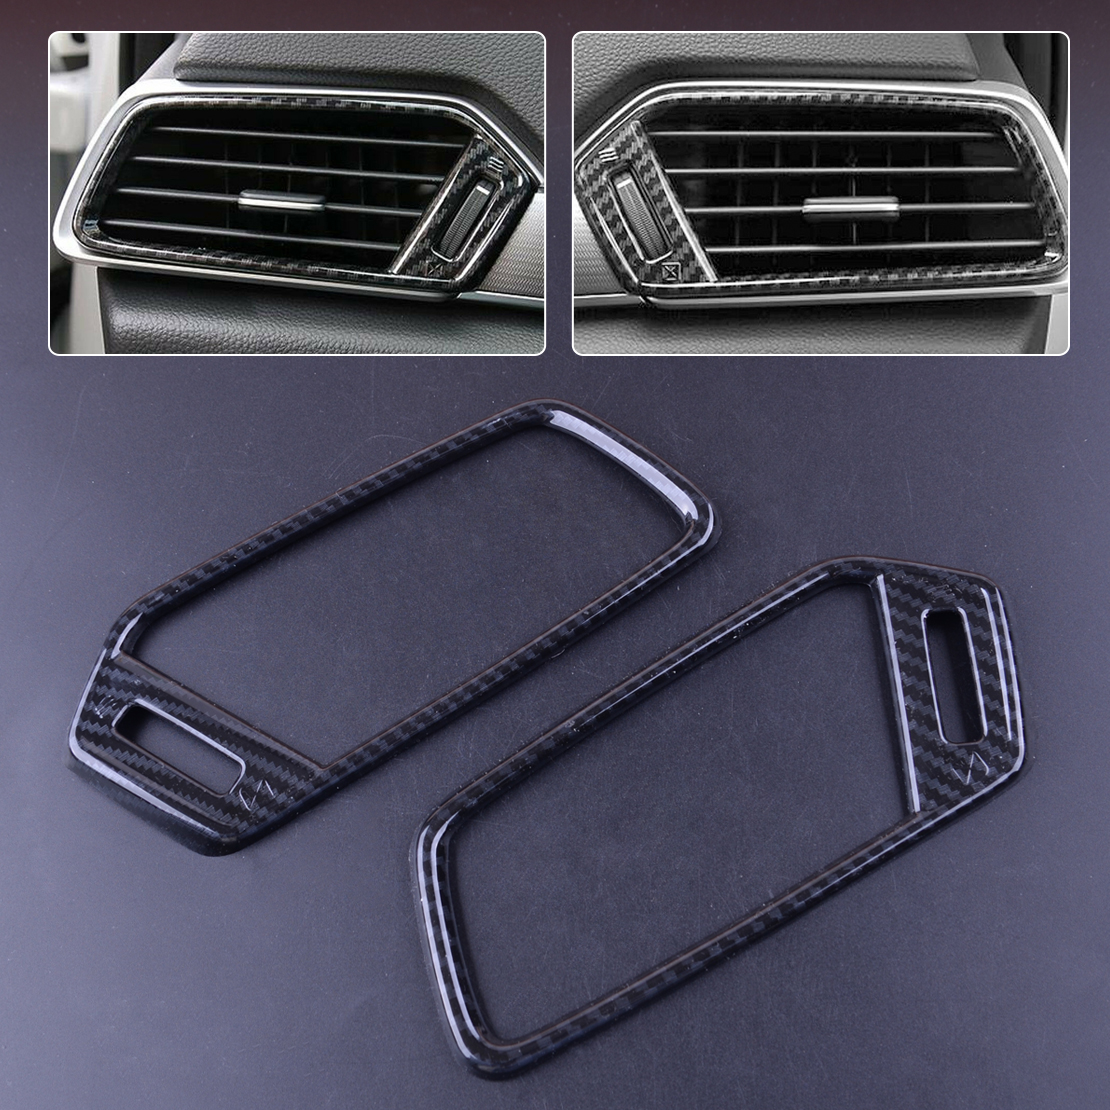 2Pcs Carbon Fiber Style Plastic Auto Car Air Vent Outlet Frame Cover Trim Sticker <font><b>Accessory</b></font> Fit For <font><b>Honda</b></font> <font><b>Accord</b></font> <font><b>2018</b></font> 2019 image